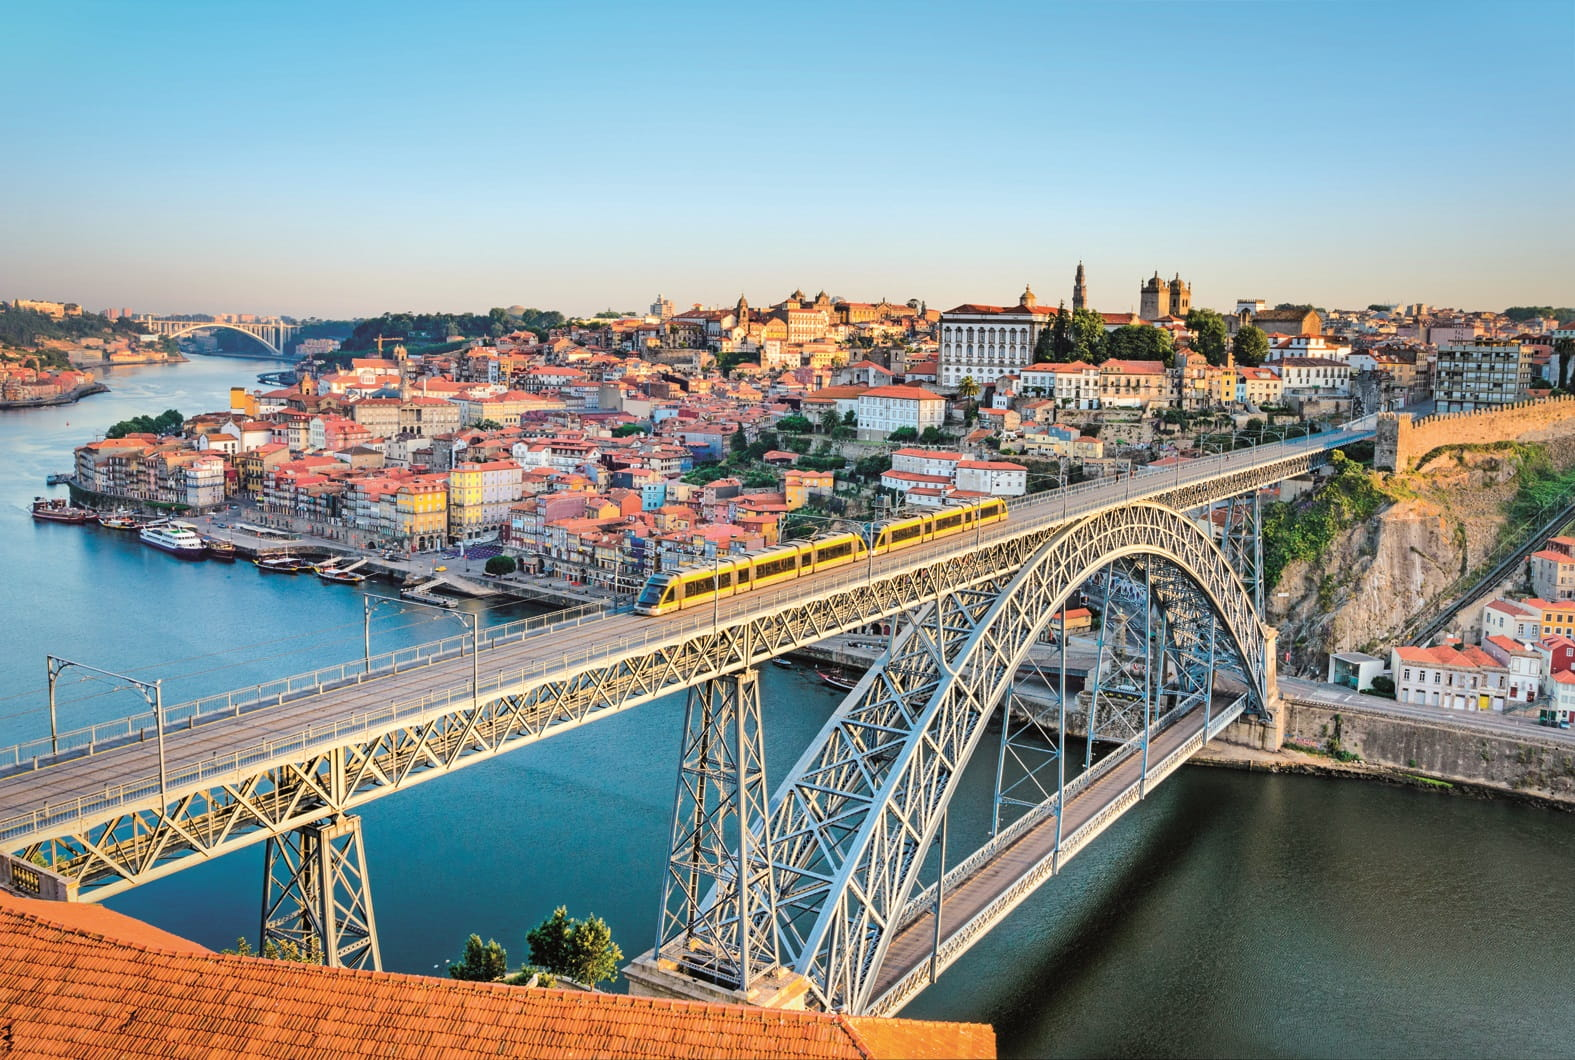 Railway bridge in Porto